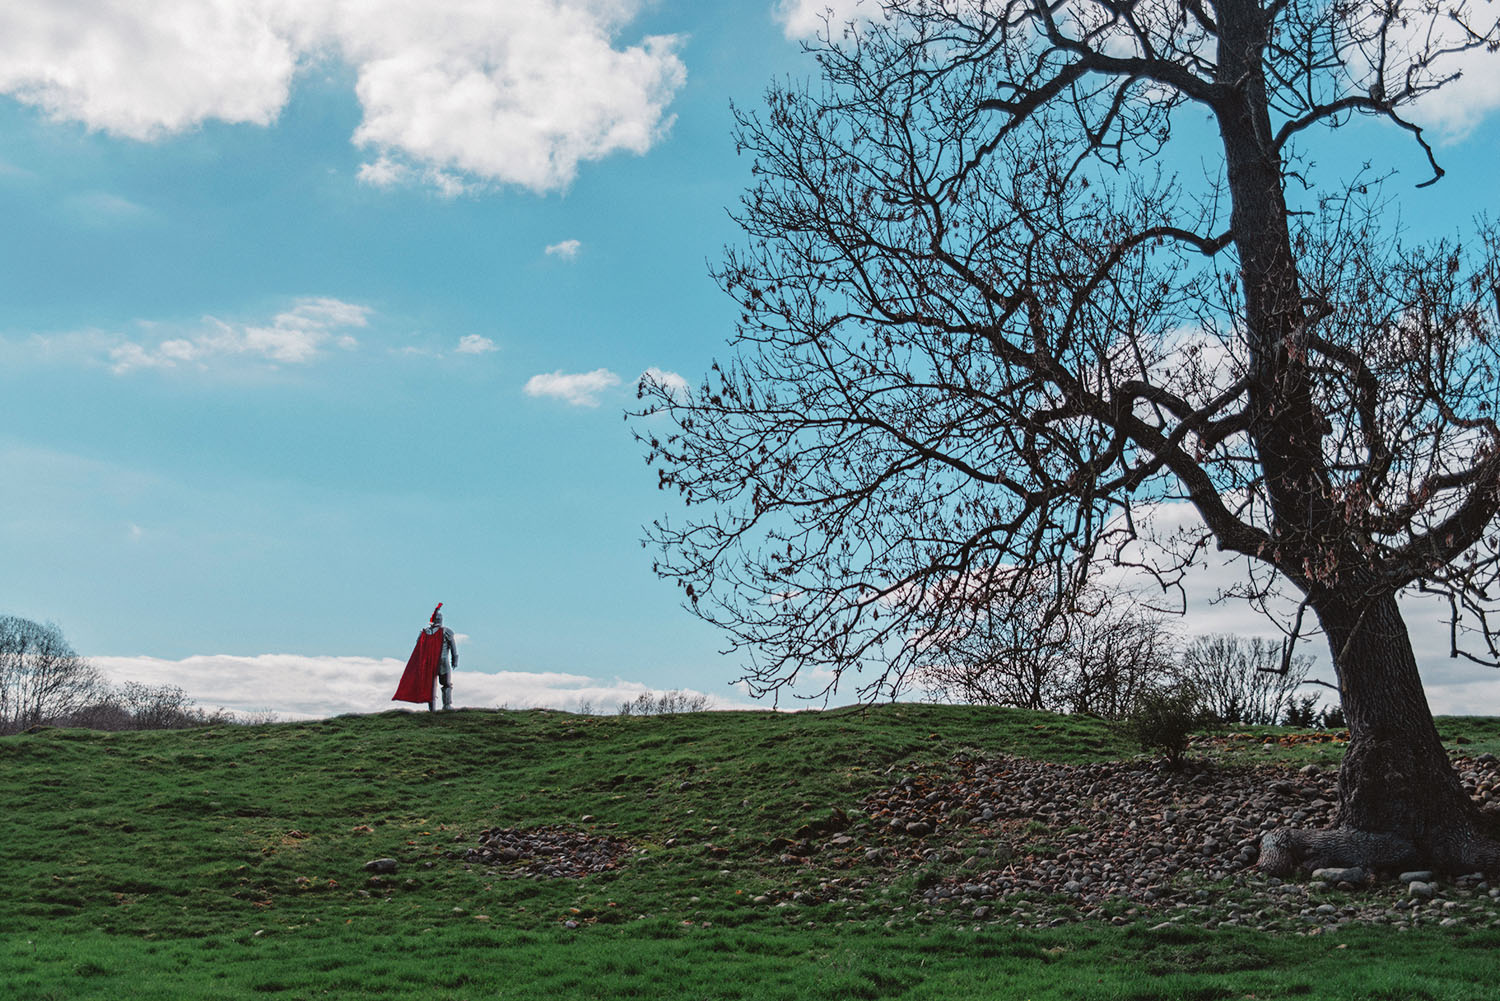 Man in King Arthur costume standing in British landscape - Lake District Tour in Cumbria - Lakes and Legends